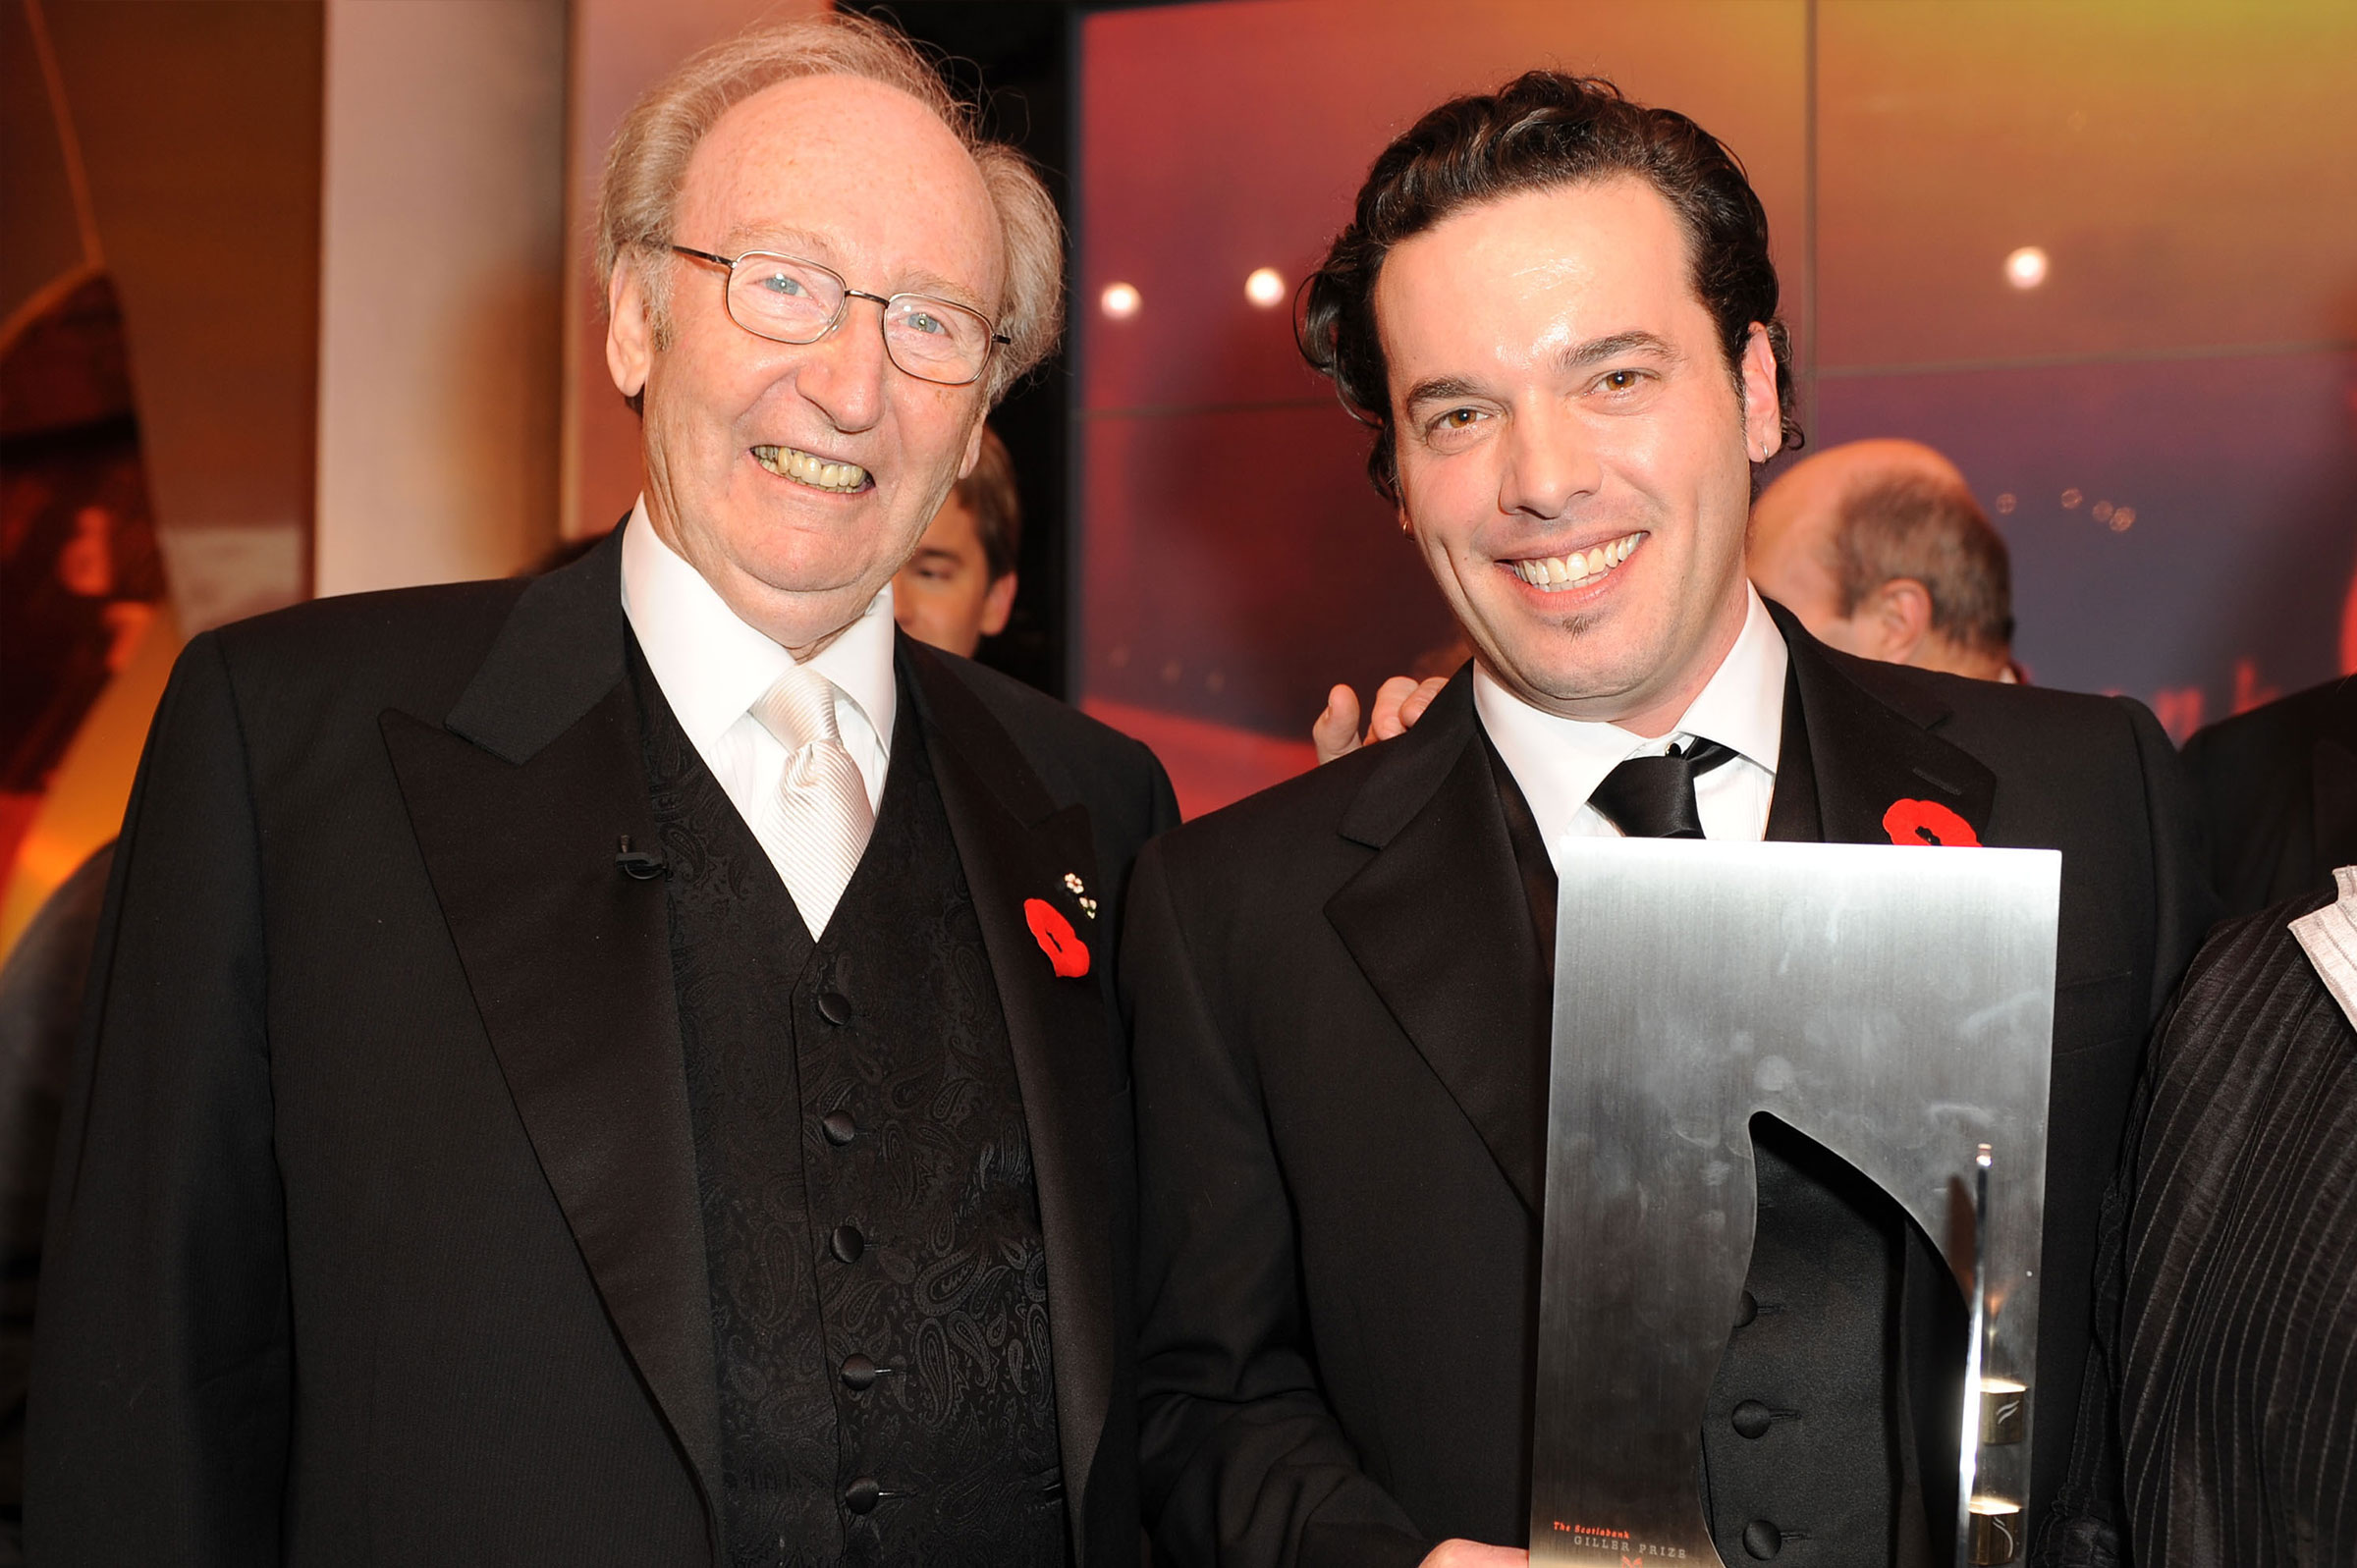 Picture of Joseph Boyden receiving the Giller Prize for his book Through Black Spruce